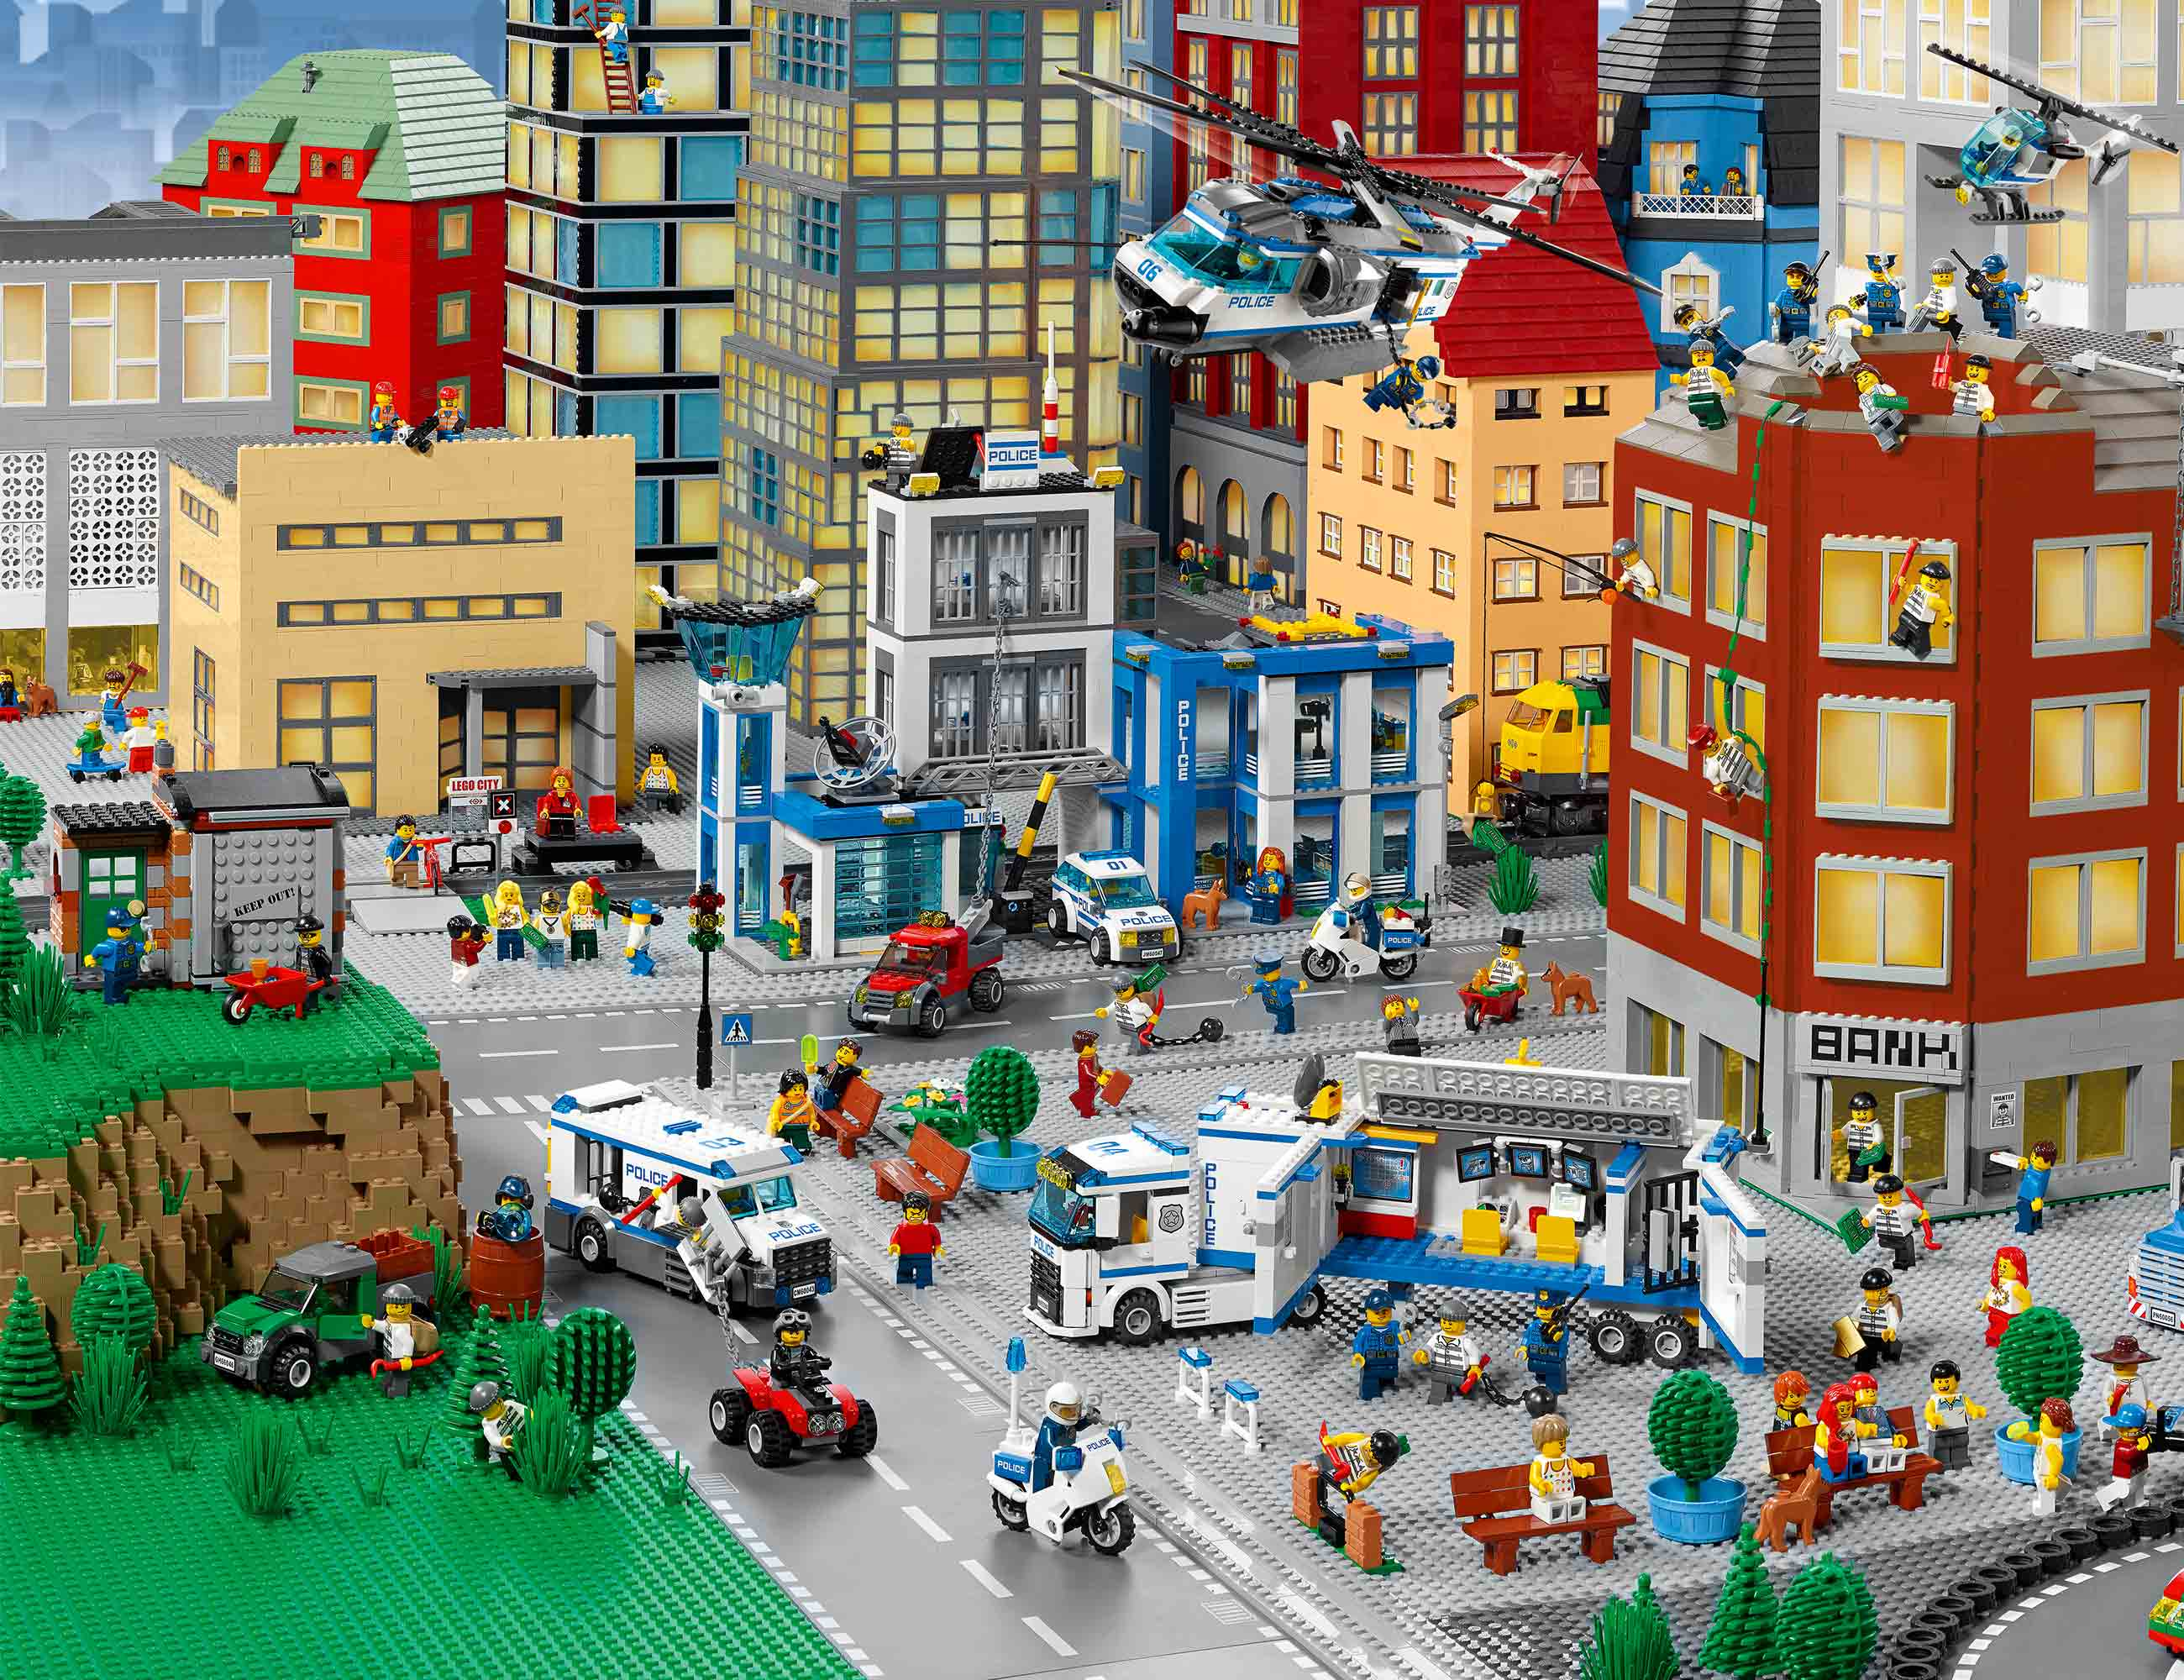 lego city wallpaper wallpapersafari. Black Bedroom Furniture Sets. Home Design Ideas